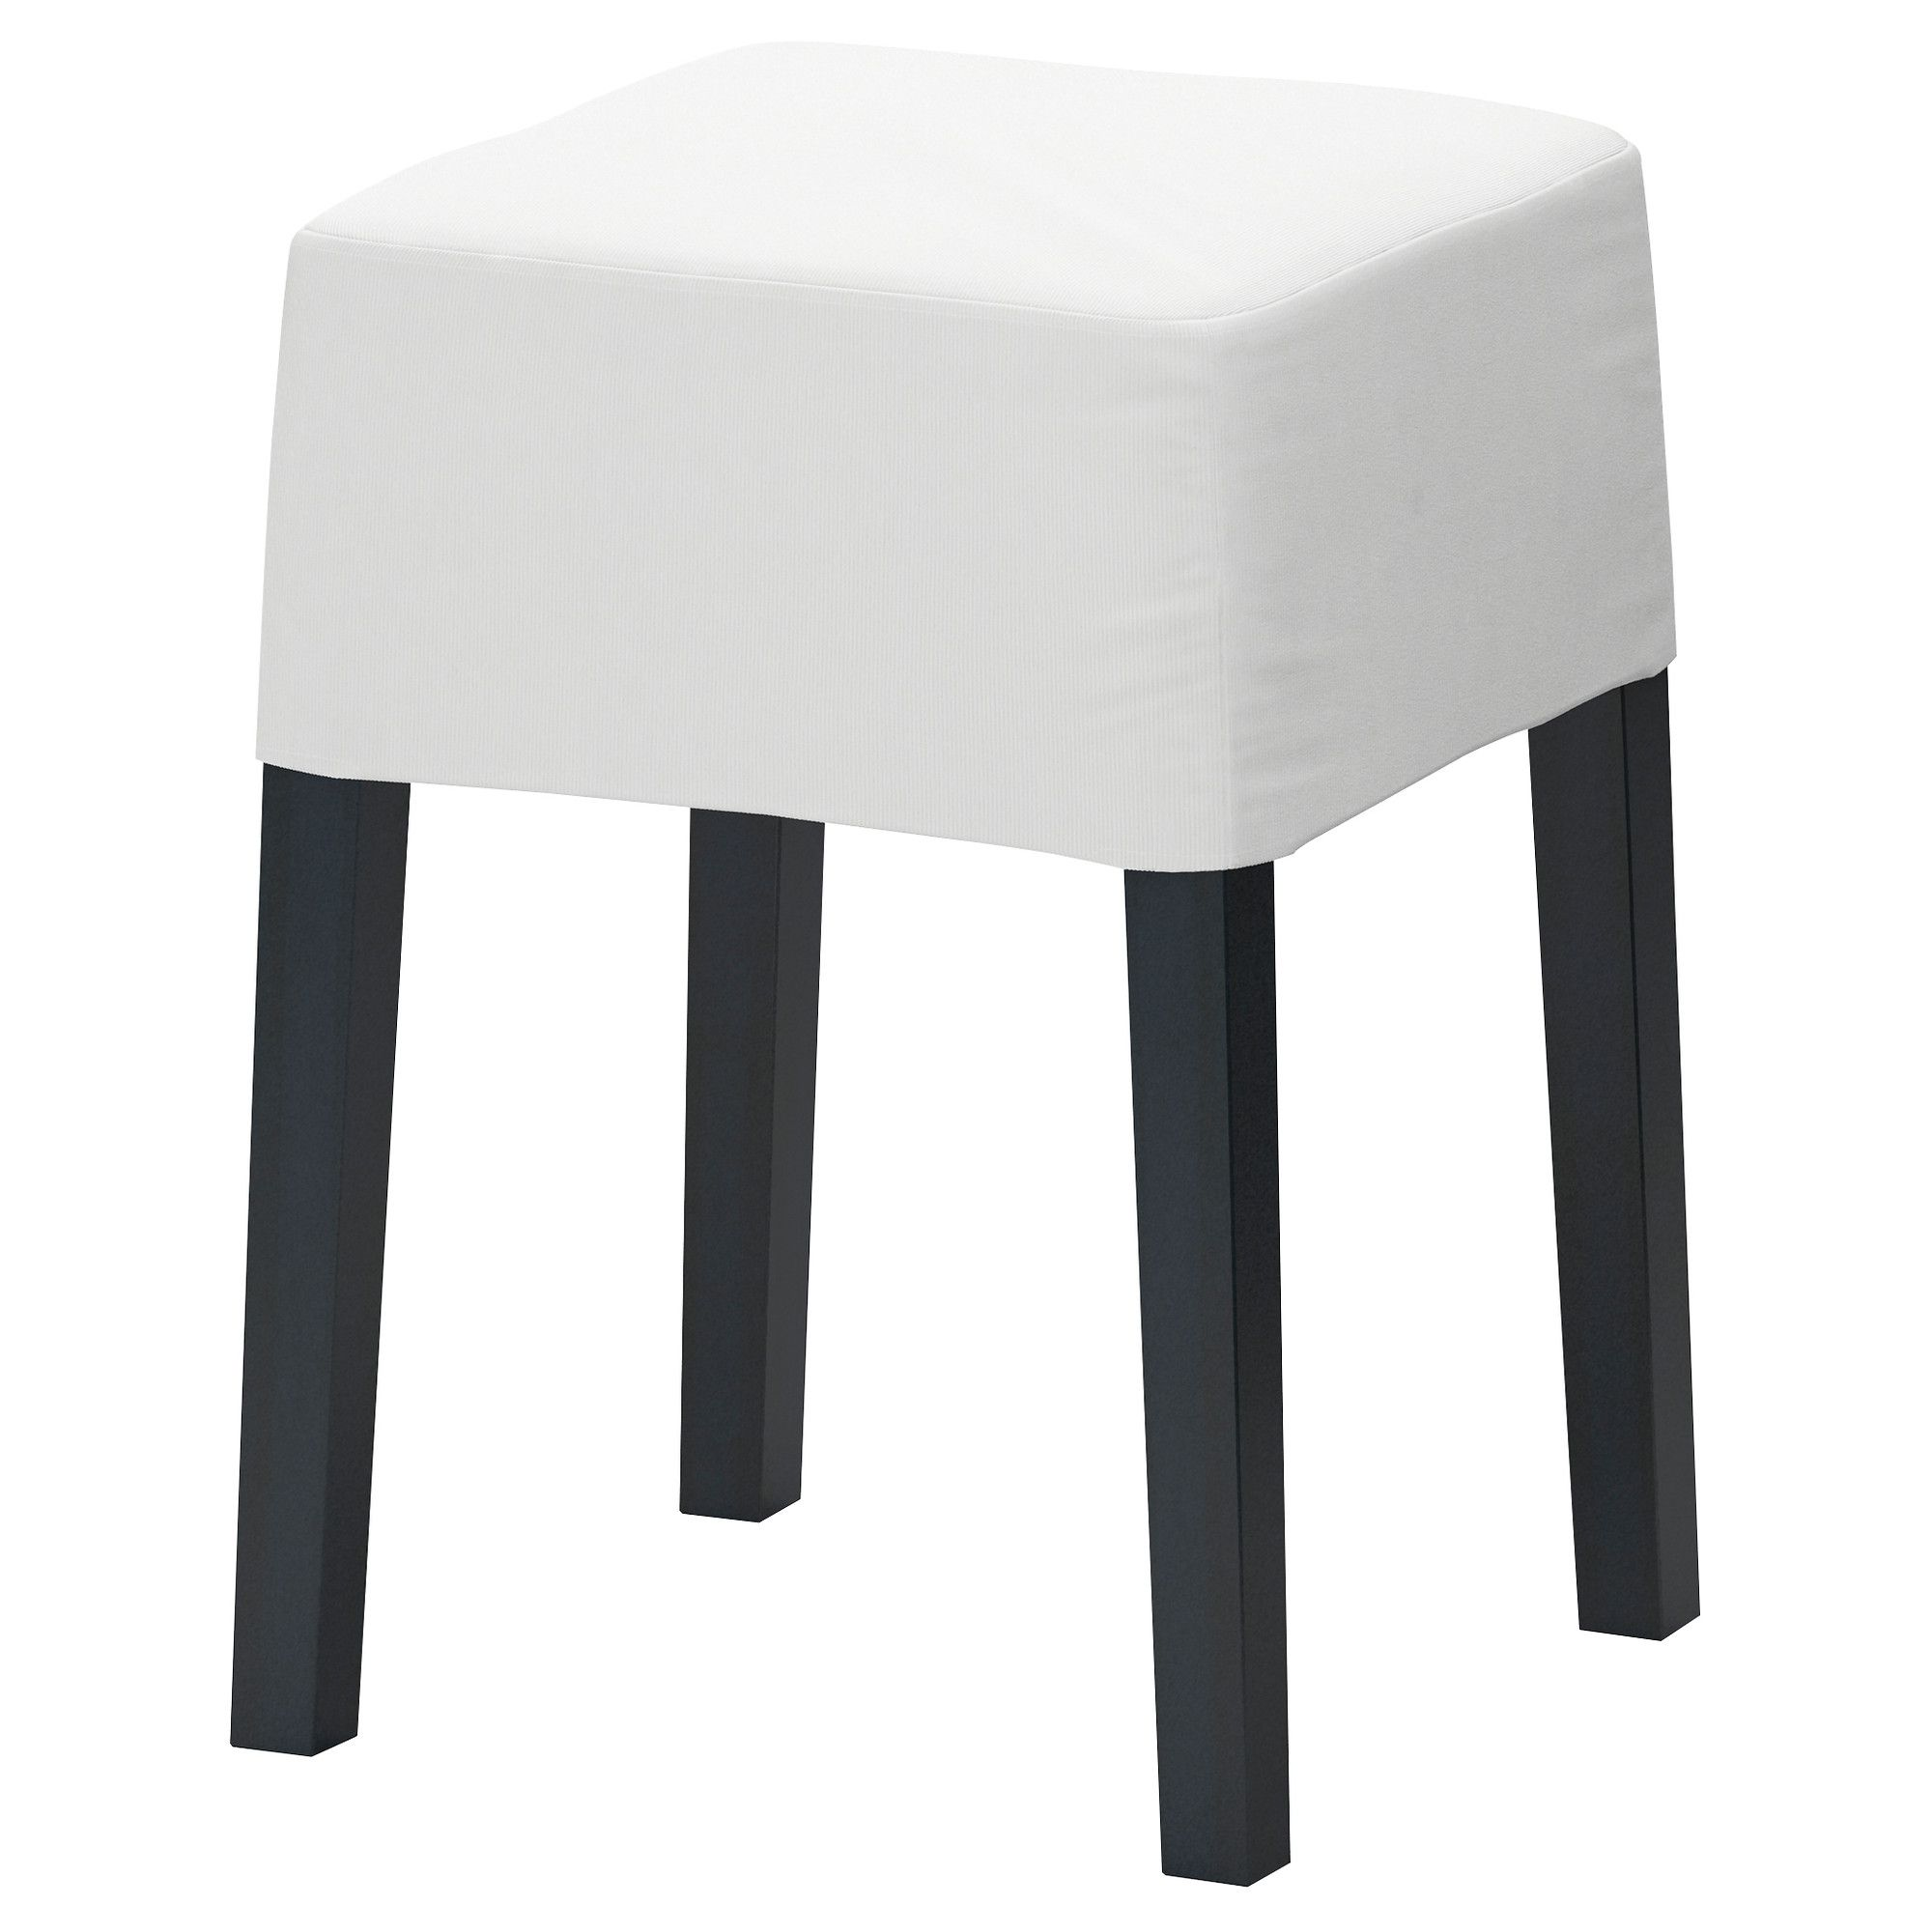 Appealing Black Wooden Stool Ikea With Beautiful White Fabric ...